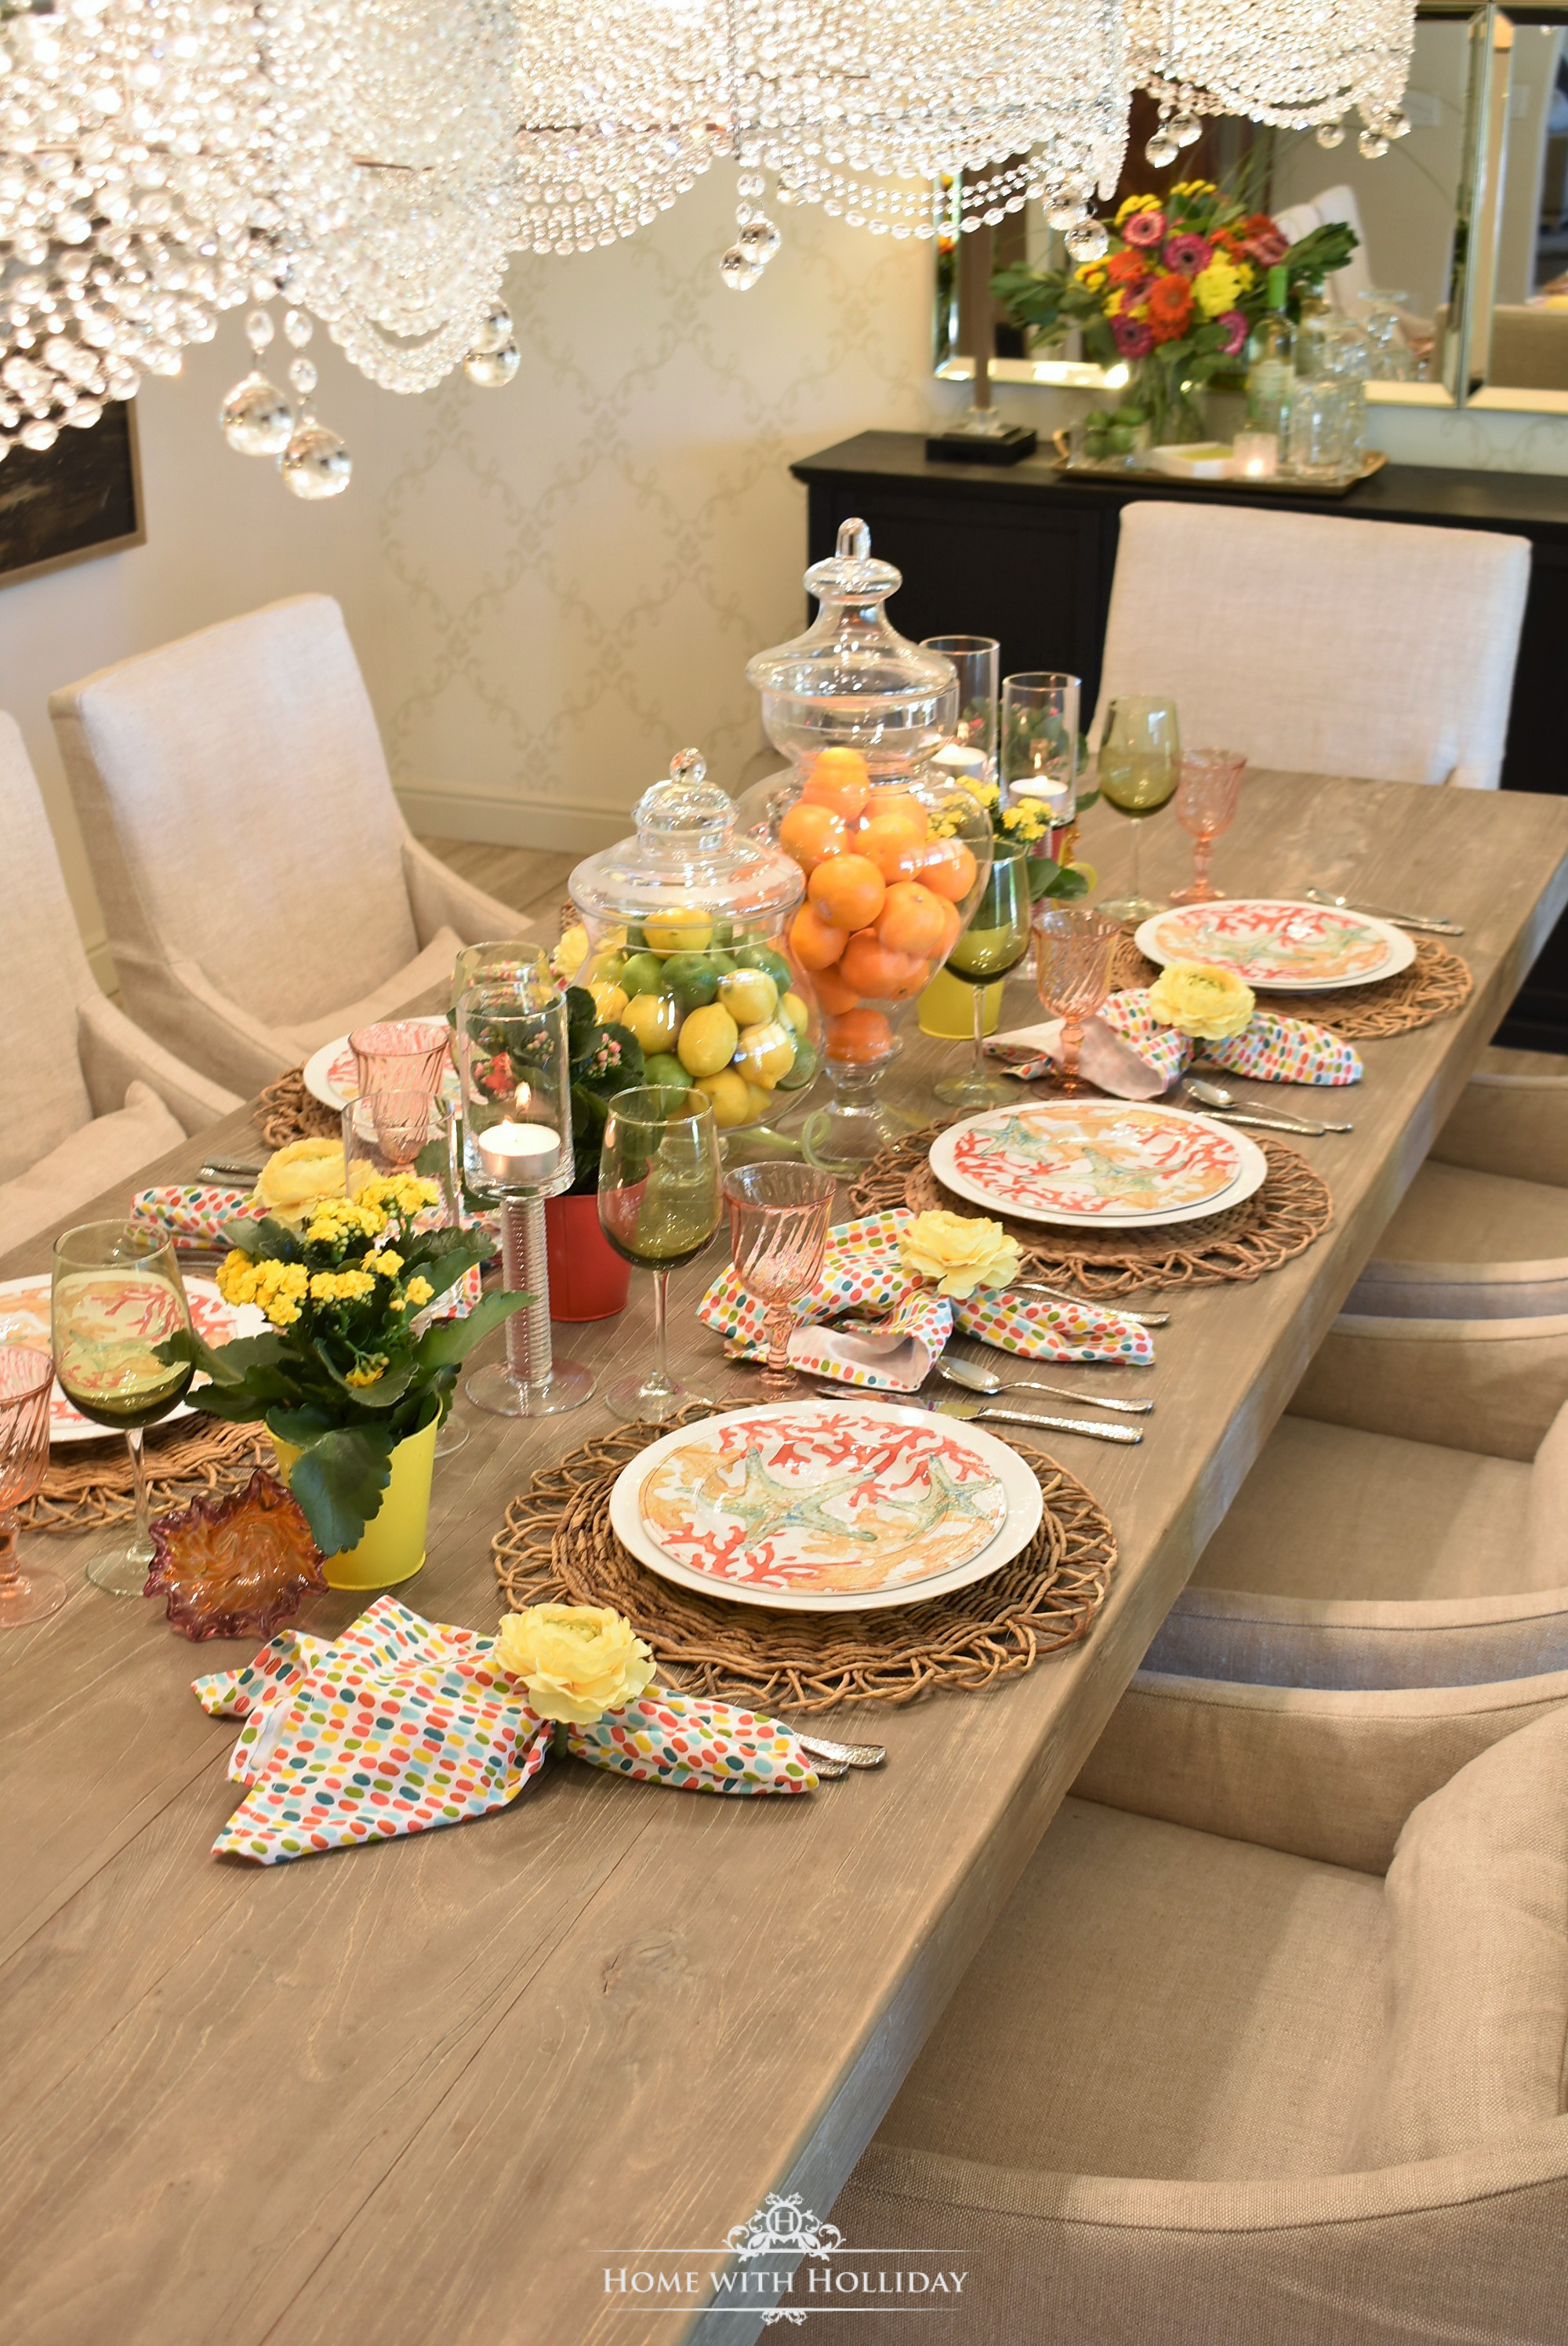 Creating a Simple Tropical Summer Table Setting - Home with Holliday